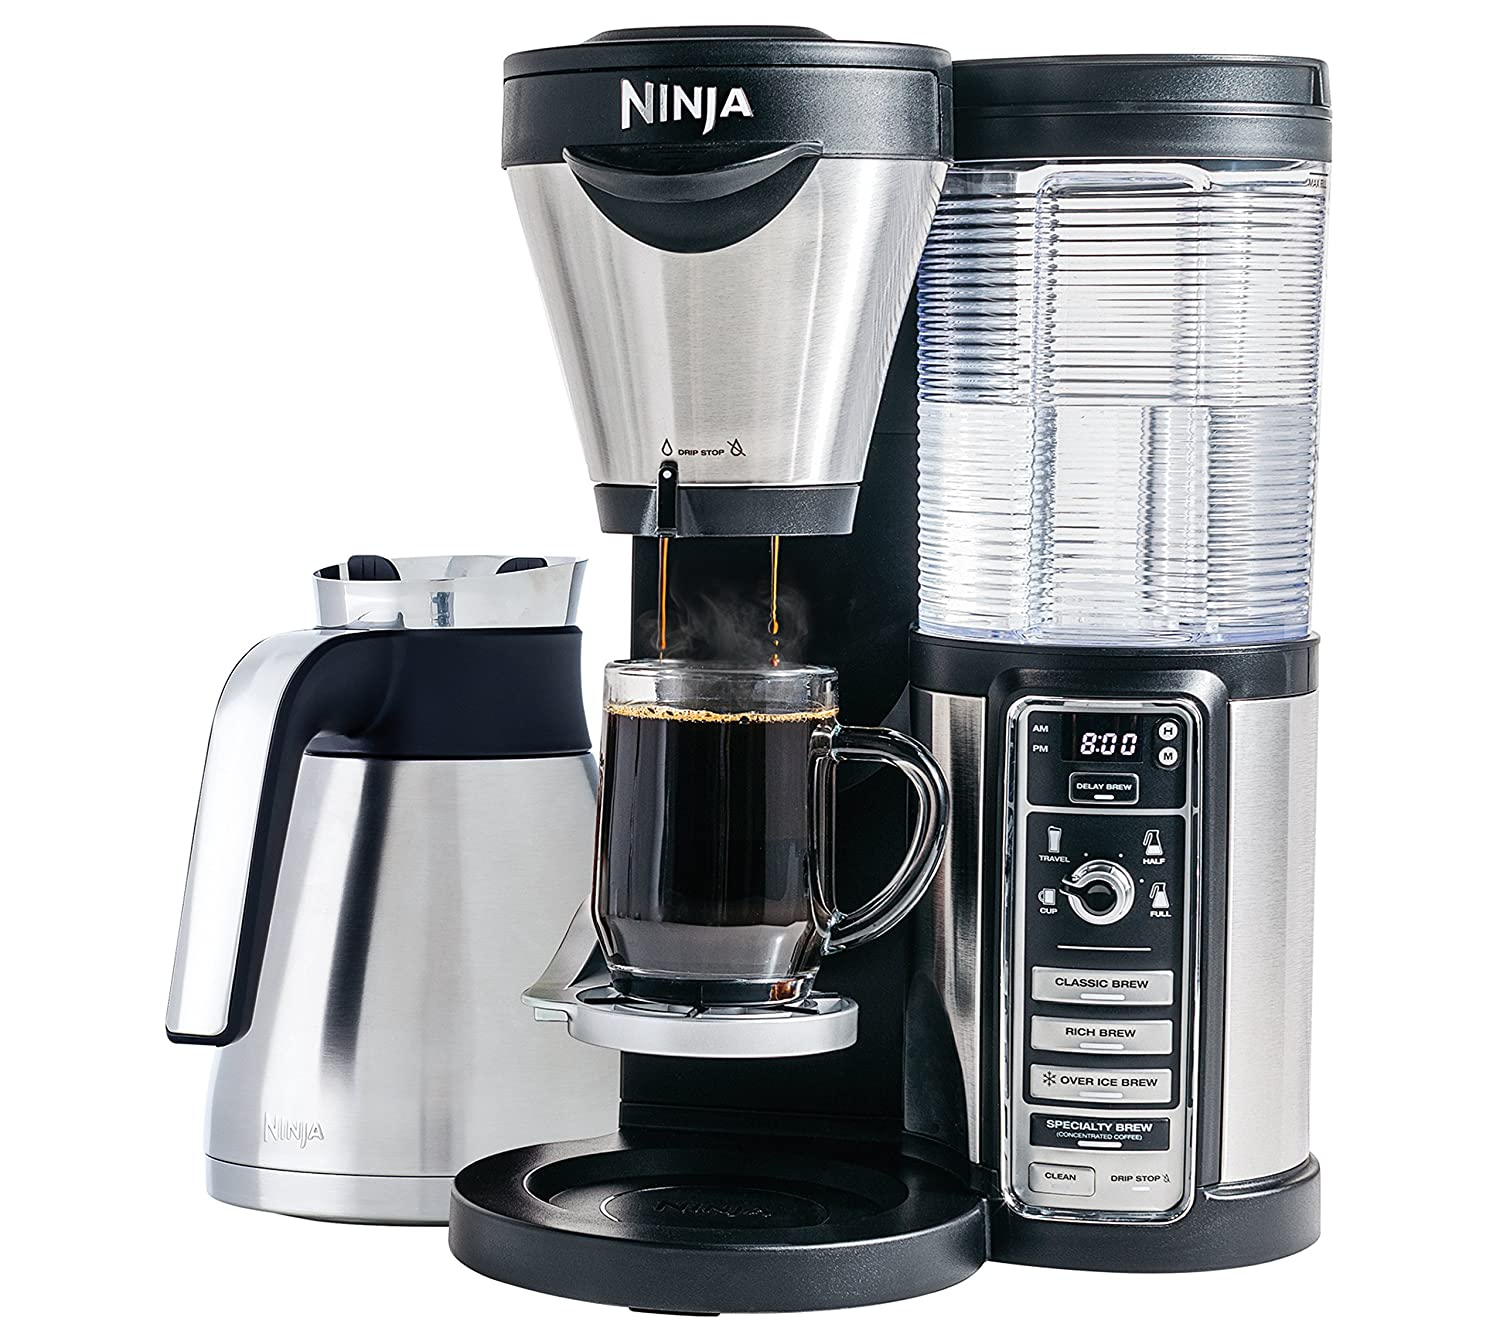 thermal coffee brewer with removable water reservoir